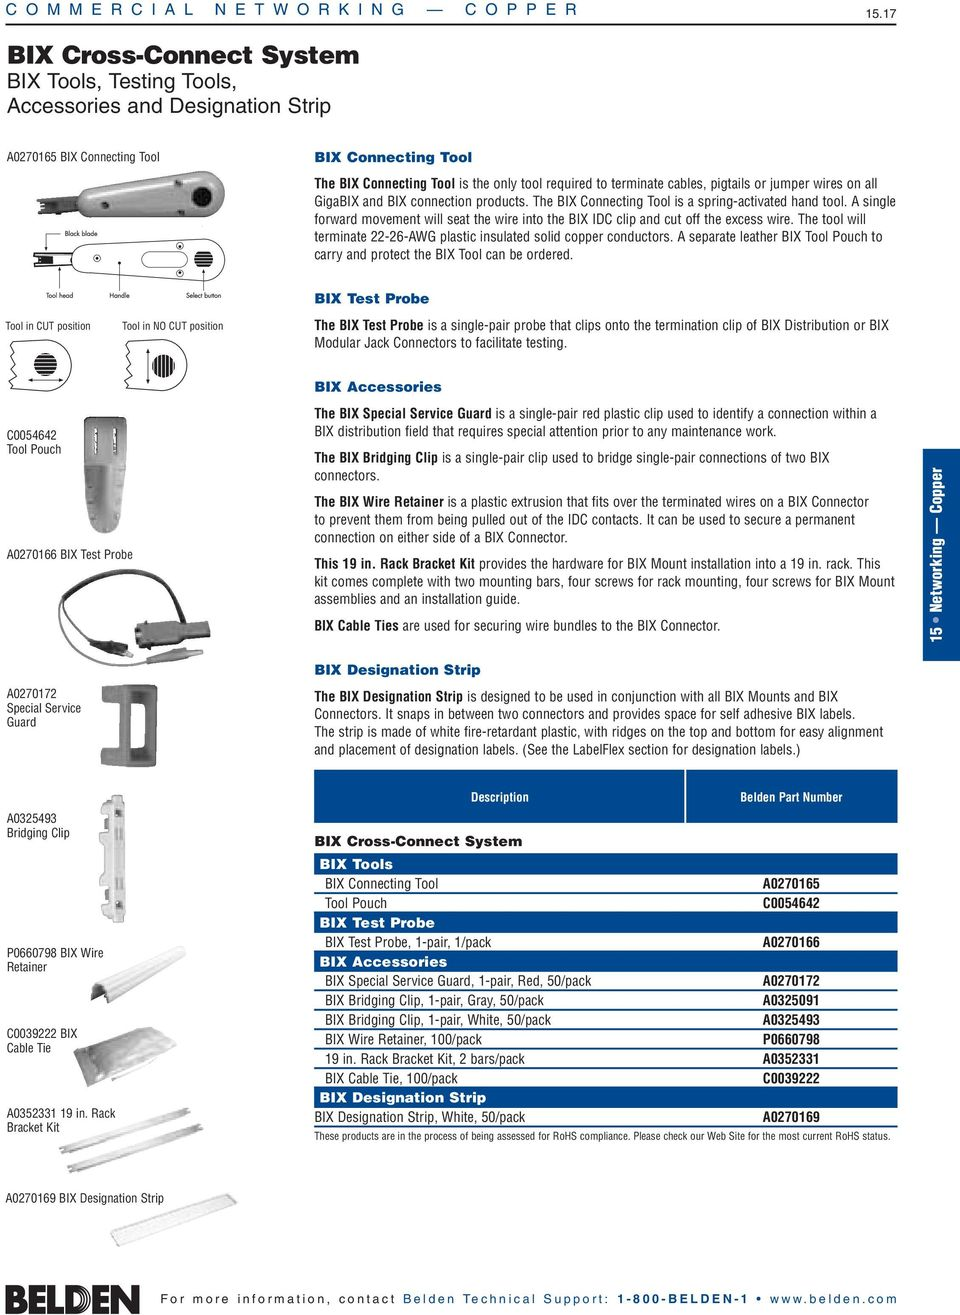 Bix Cross Connect System Distribution Connectors Multiplying Modular Jack Instruction Sheet On Usoc Rj45 Wiring Jumper Wires All Gigabix And Connection Products The Connecting Tool Is A